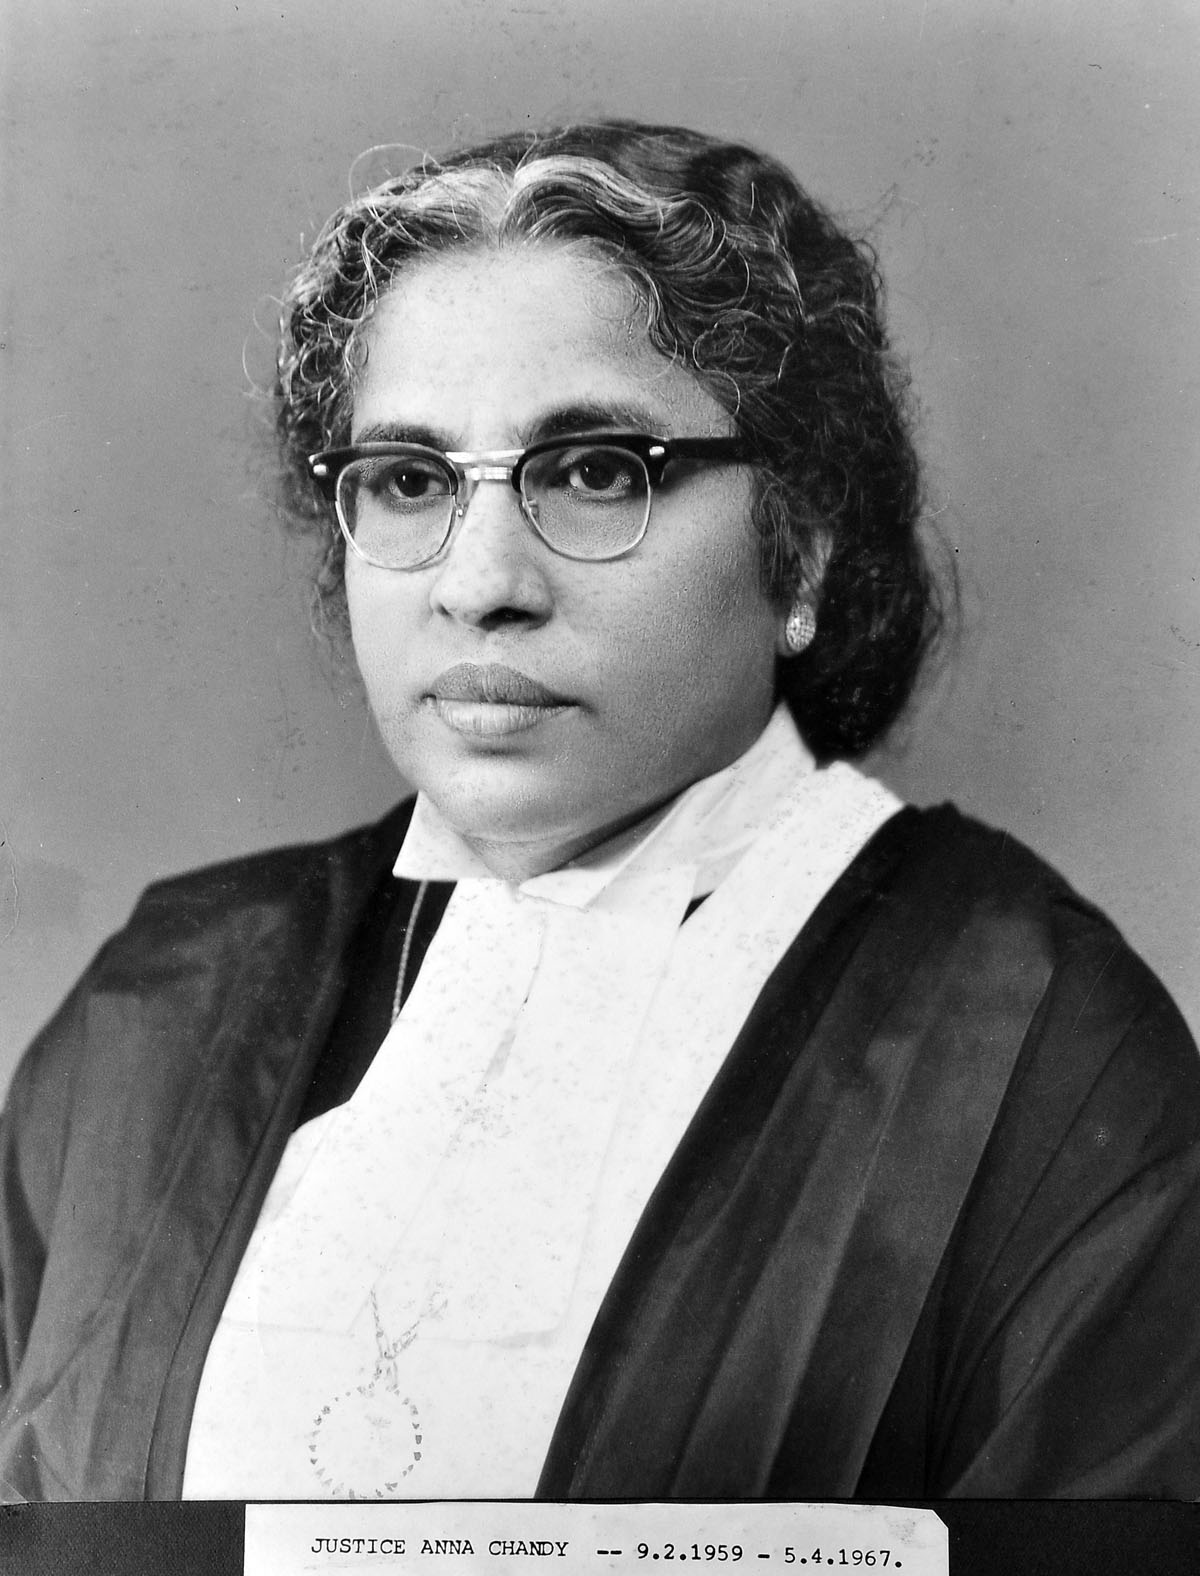 Justice Anna Chandy